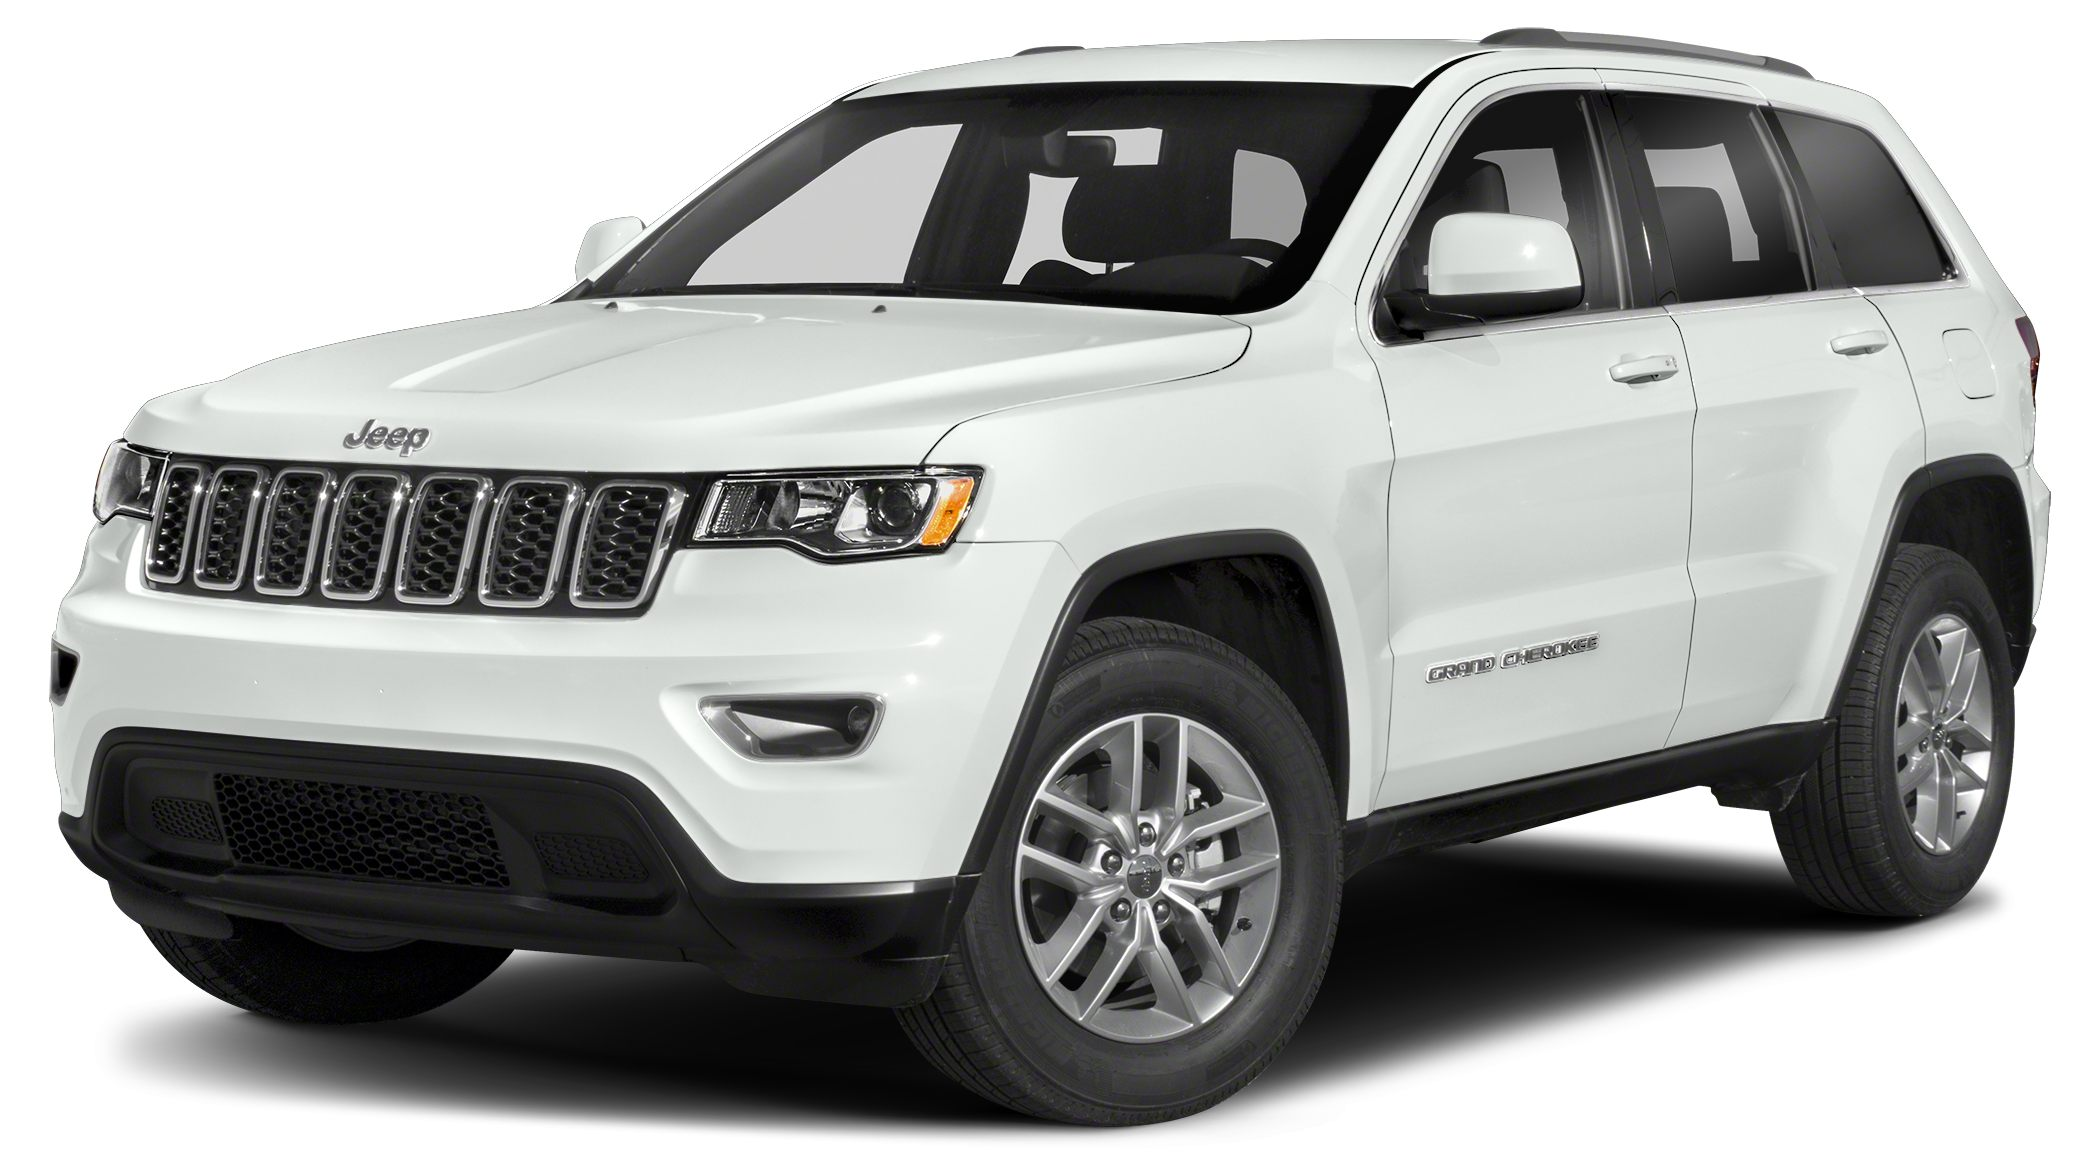 2018 Jeep Grand Cherokee Laredo This 2018 Jeep Grand Cherokee 4dr Laredo features a 36L V6 Cylind